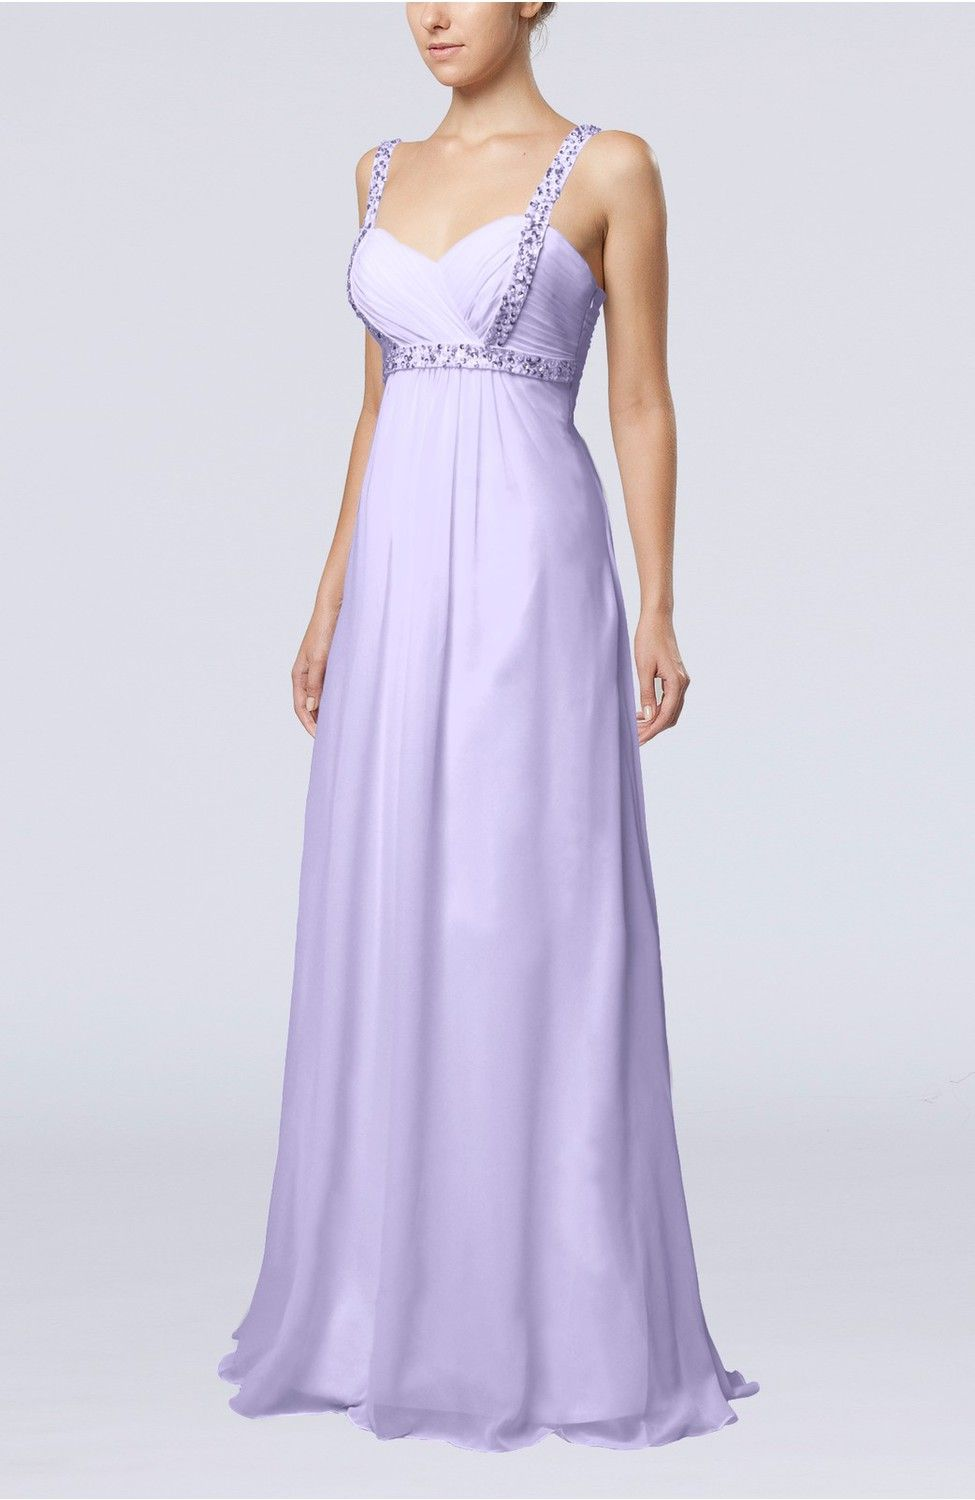 Lavender Bridal Gown - Simple Hall Empire Thick Straps Floor Length Beaded